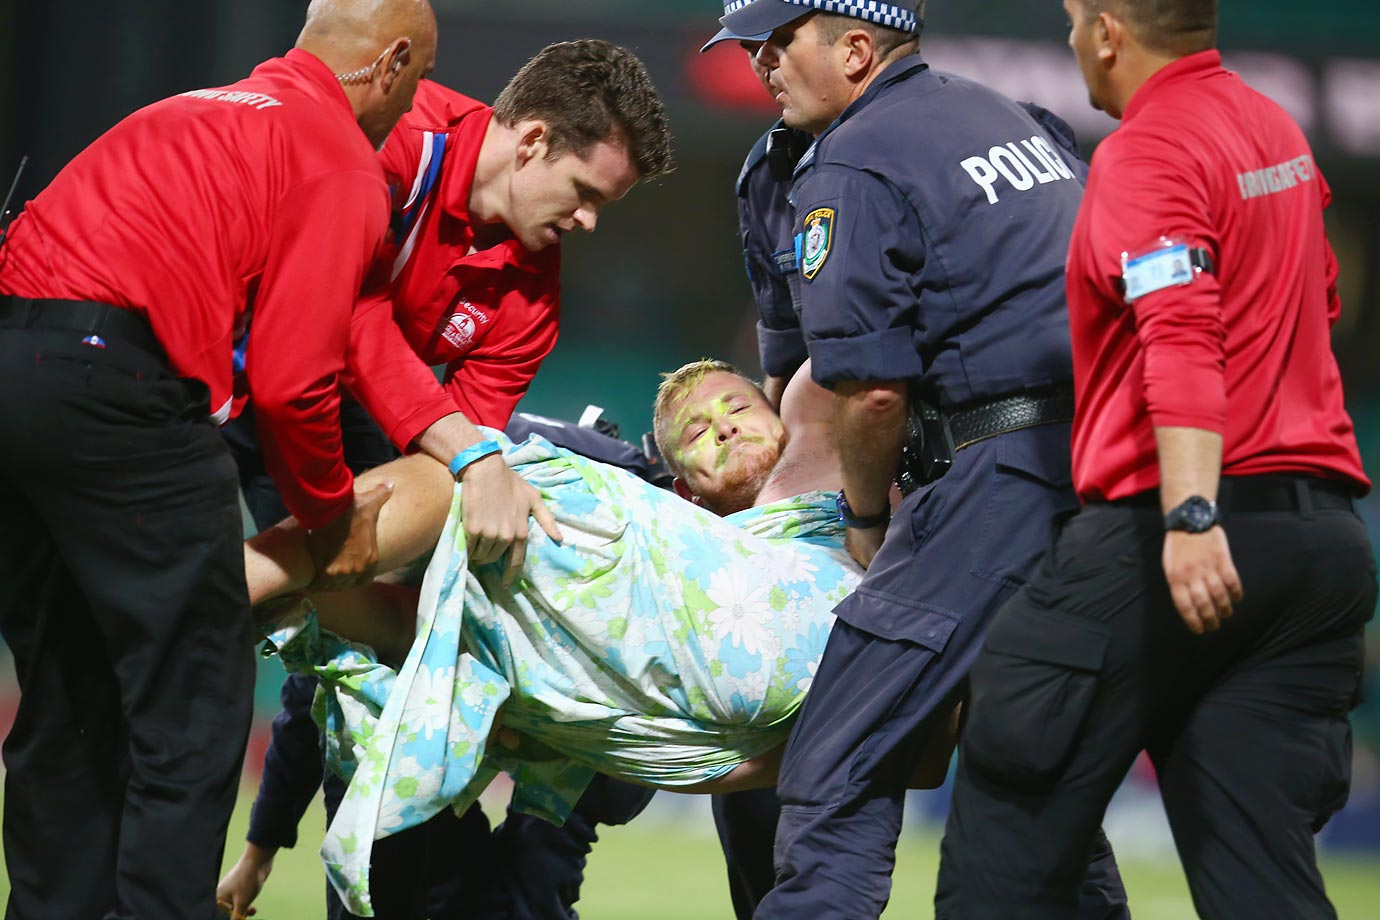 A streaker gets wrapped up and shuffled out during Game 5 of the One Day International series between Australia and South Africa.